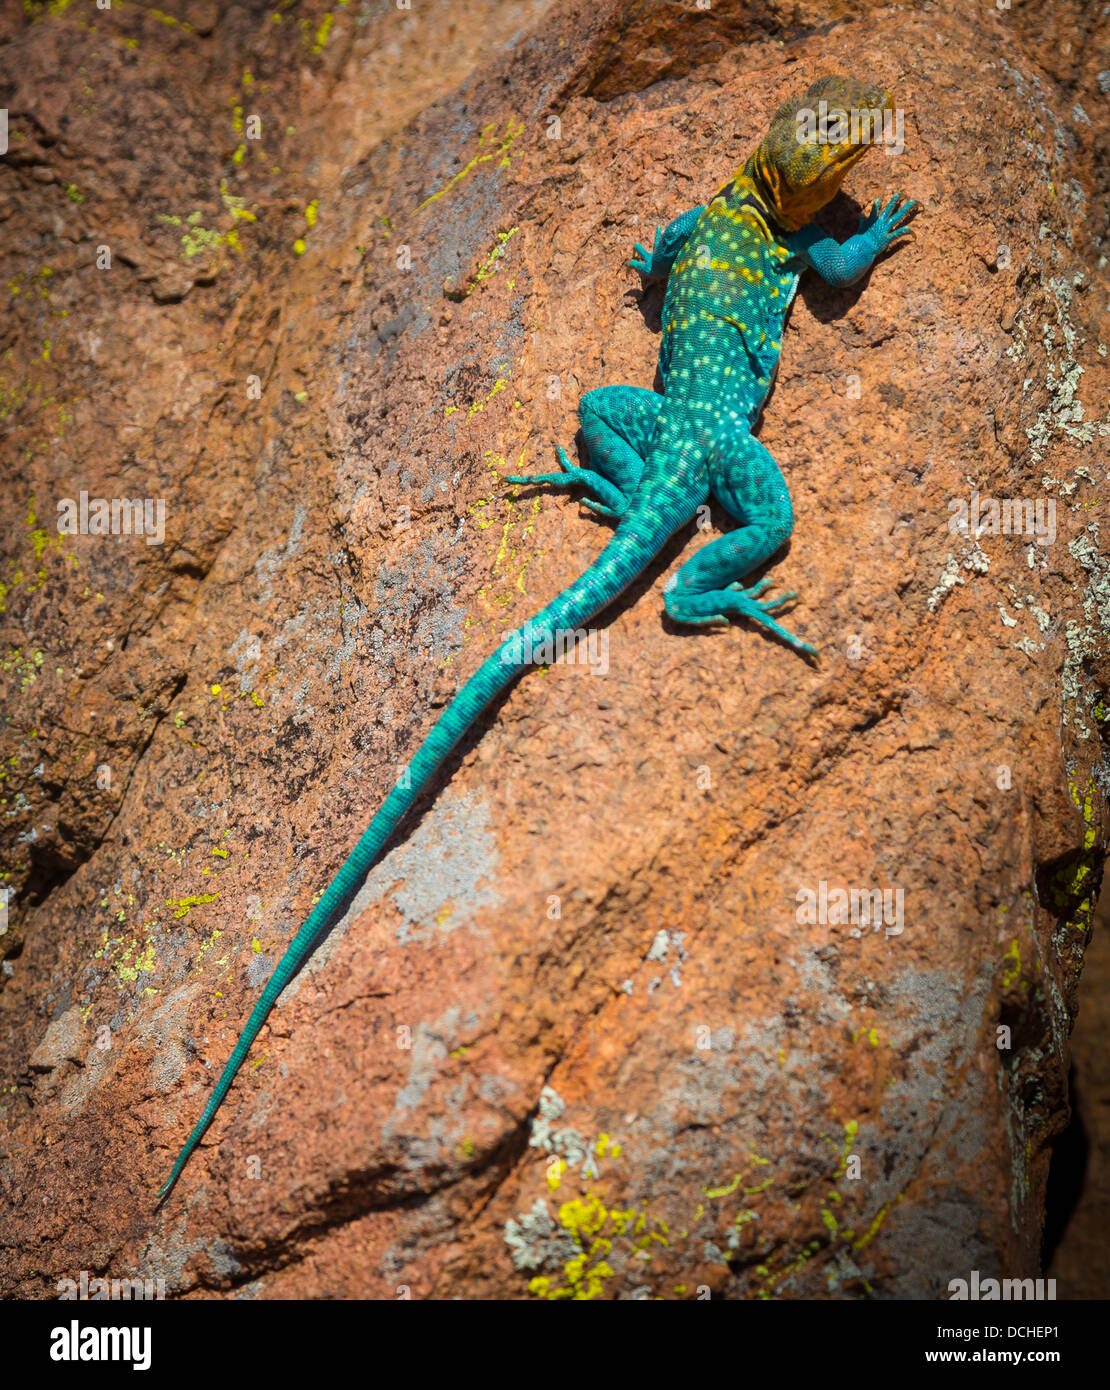 Collared lizard in Wichita Mountains National Wildlife Refuge in Lawton, Oklahoma - Stock Image